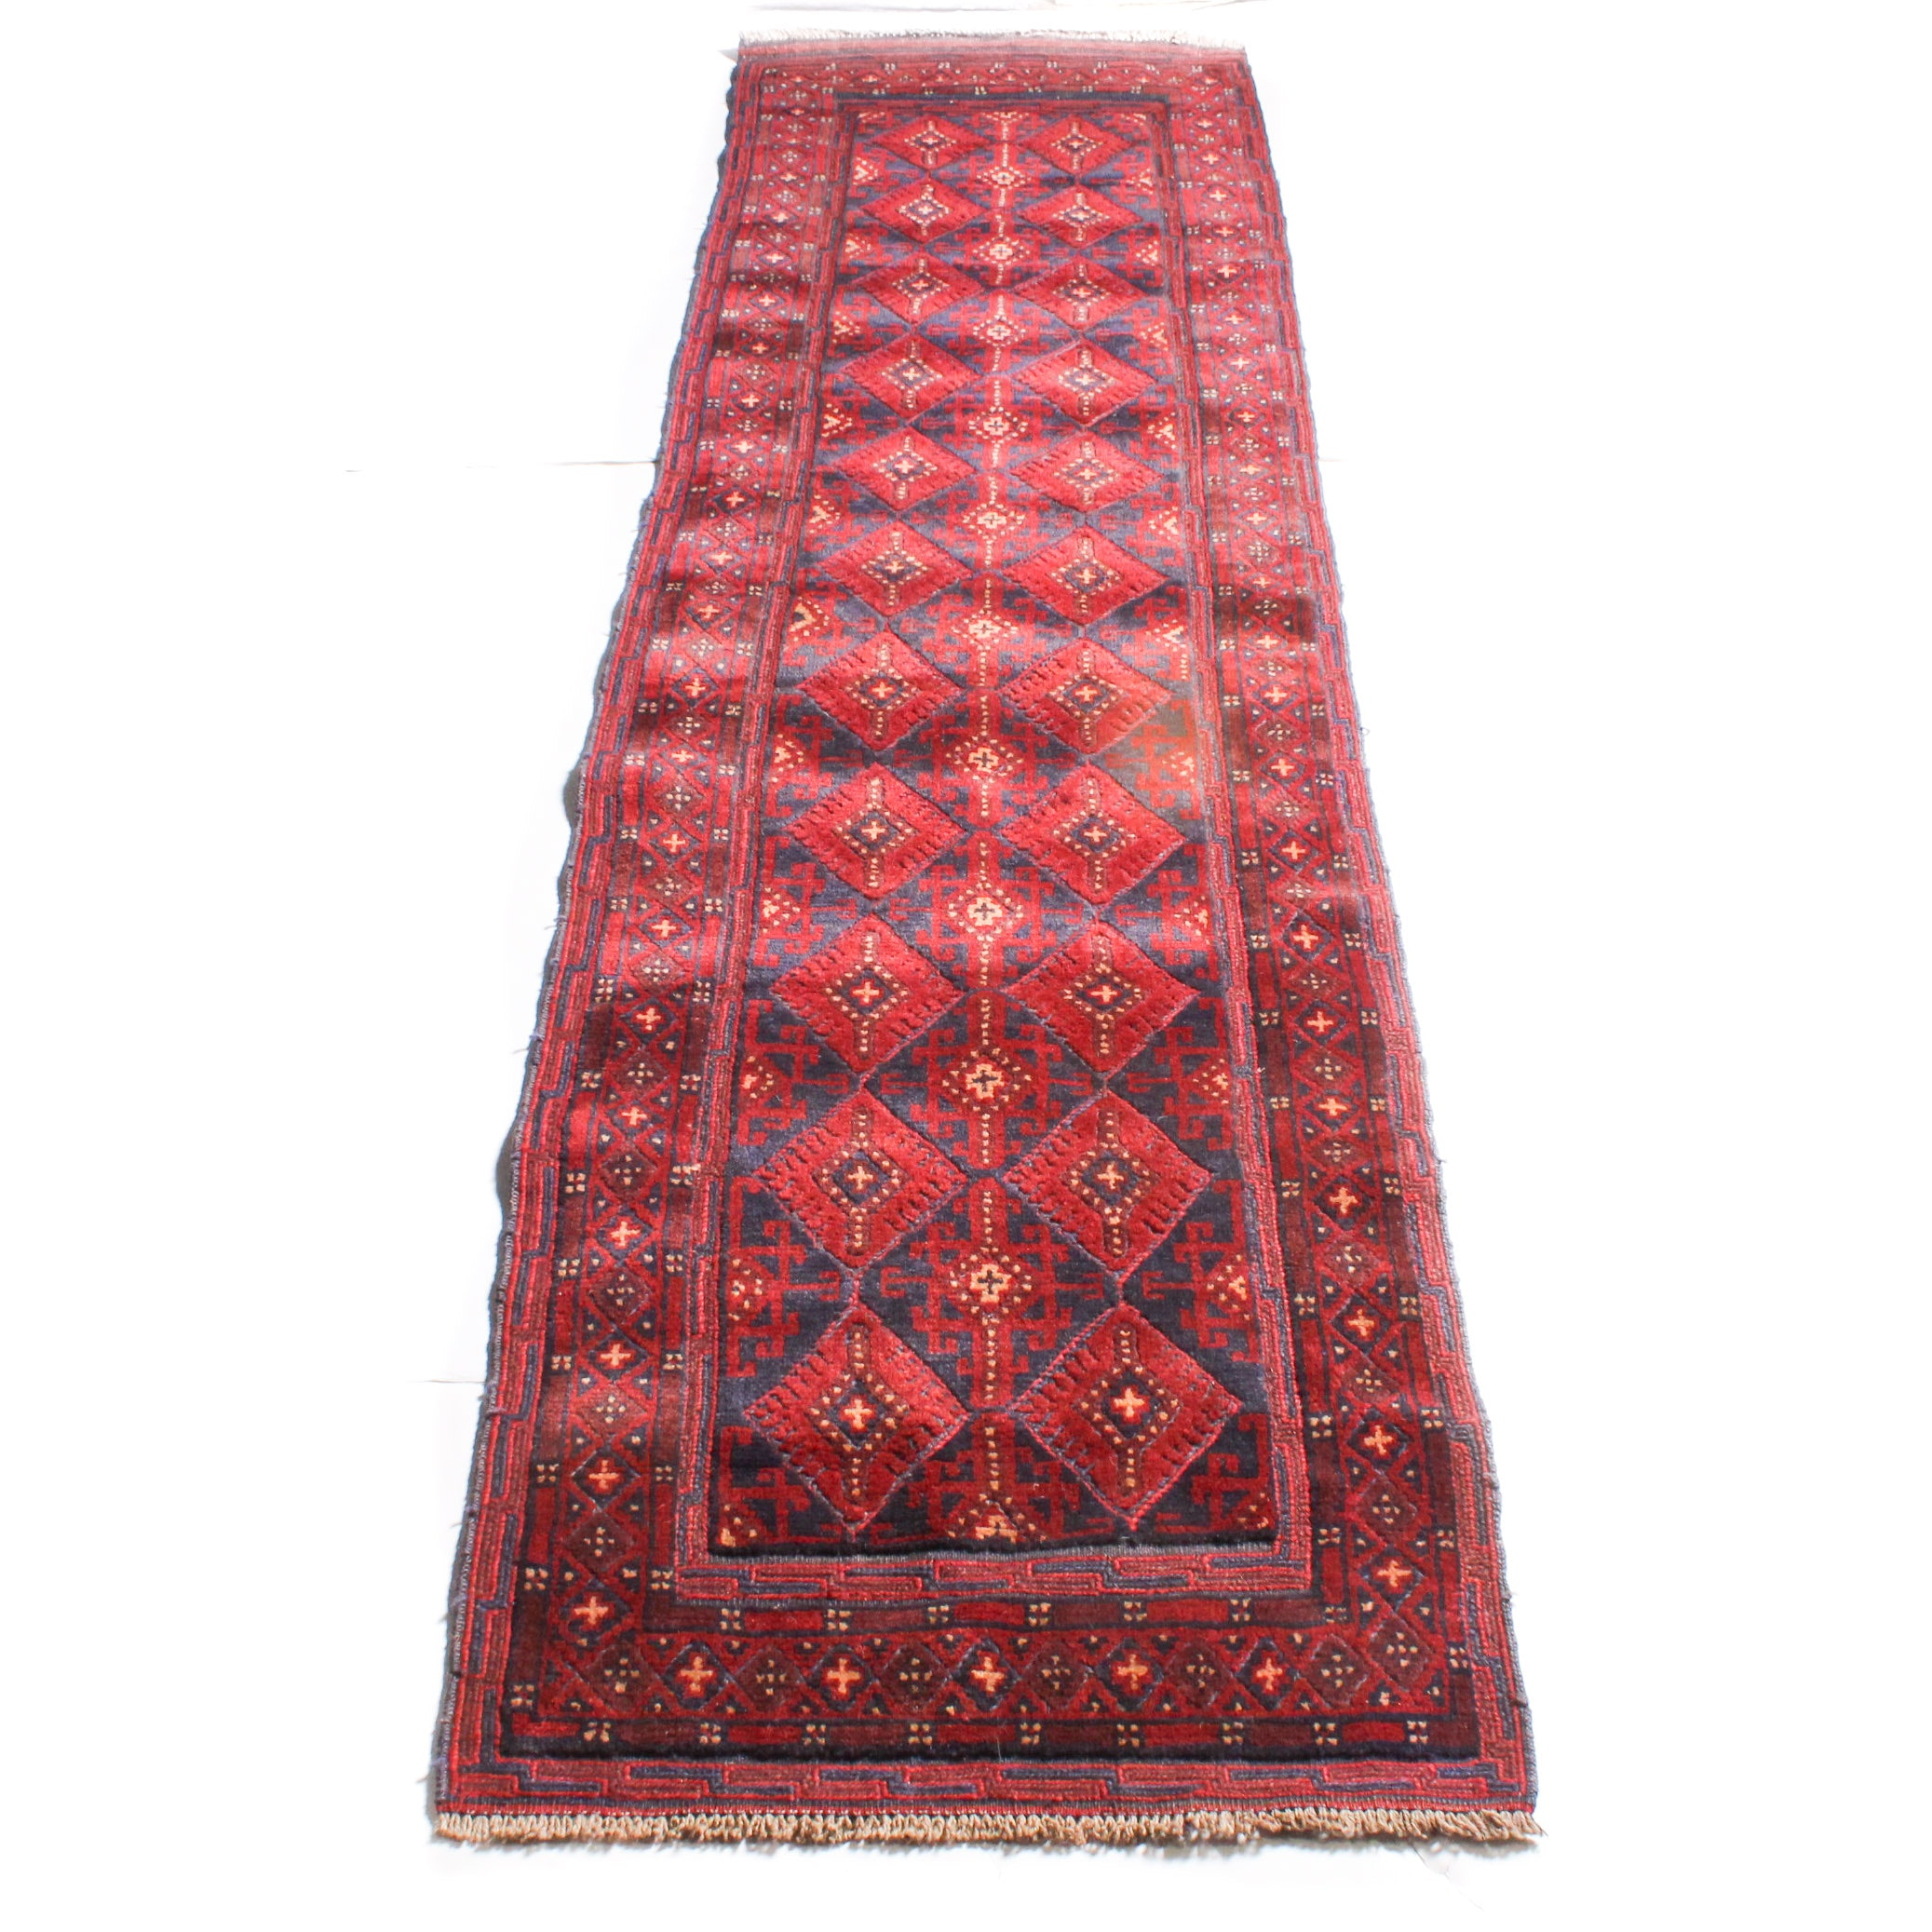 2'2 x 8'9 Hand-Knotted Afghan Baluch Carpet Runner